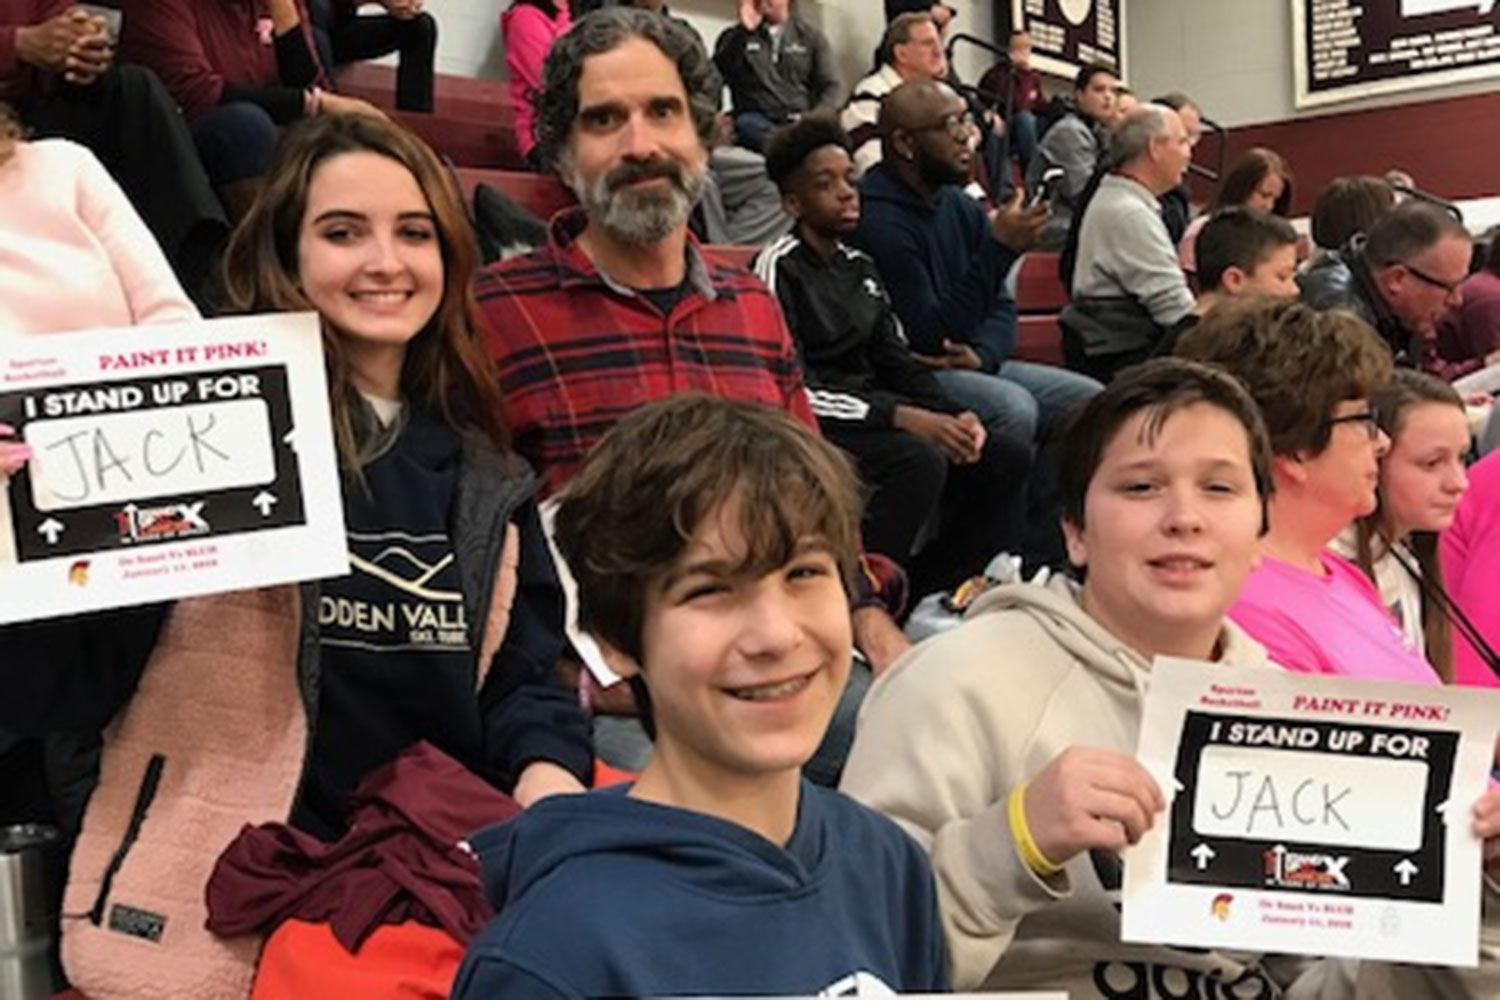 Jack's dad, sister, brother and his friend support Jack at the Paint it Pink basketball game.